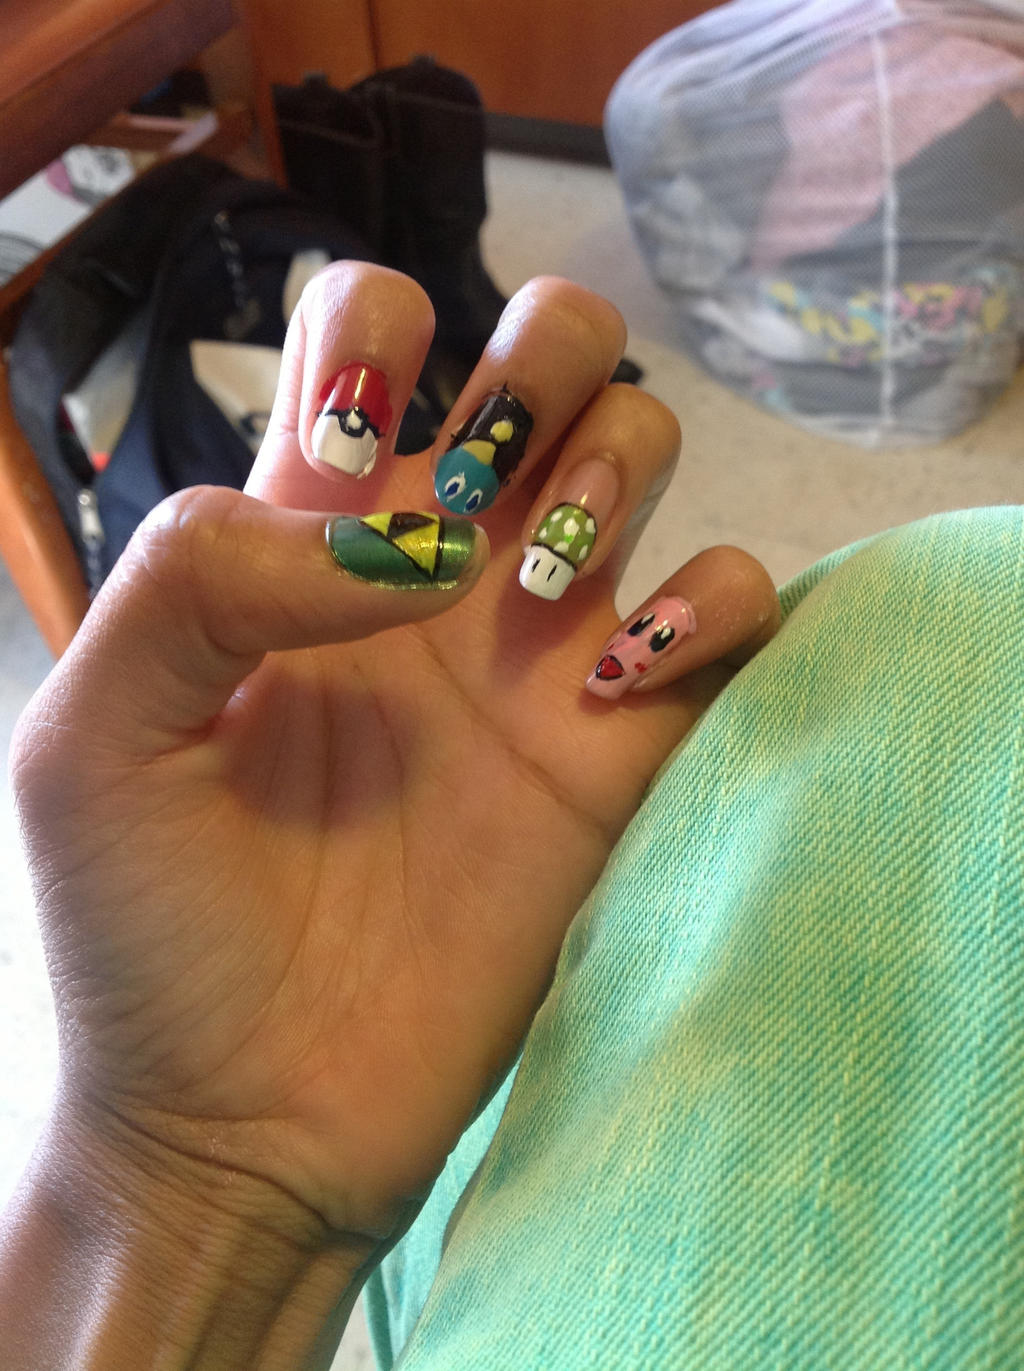 Gamer Nails by XDXDXDXDXD1 on DeviantArt